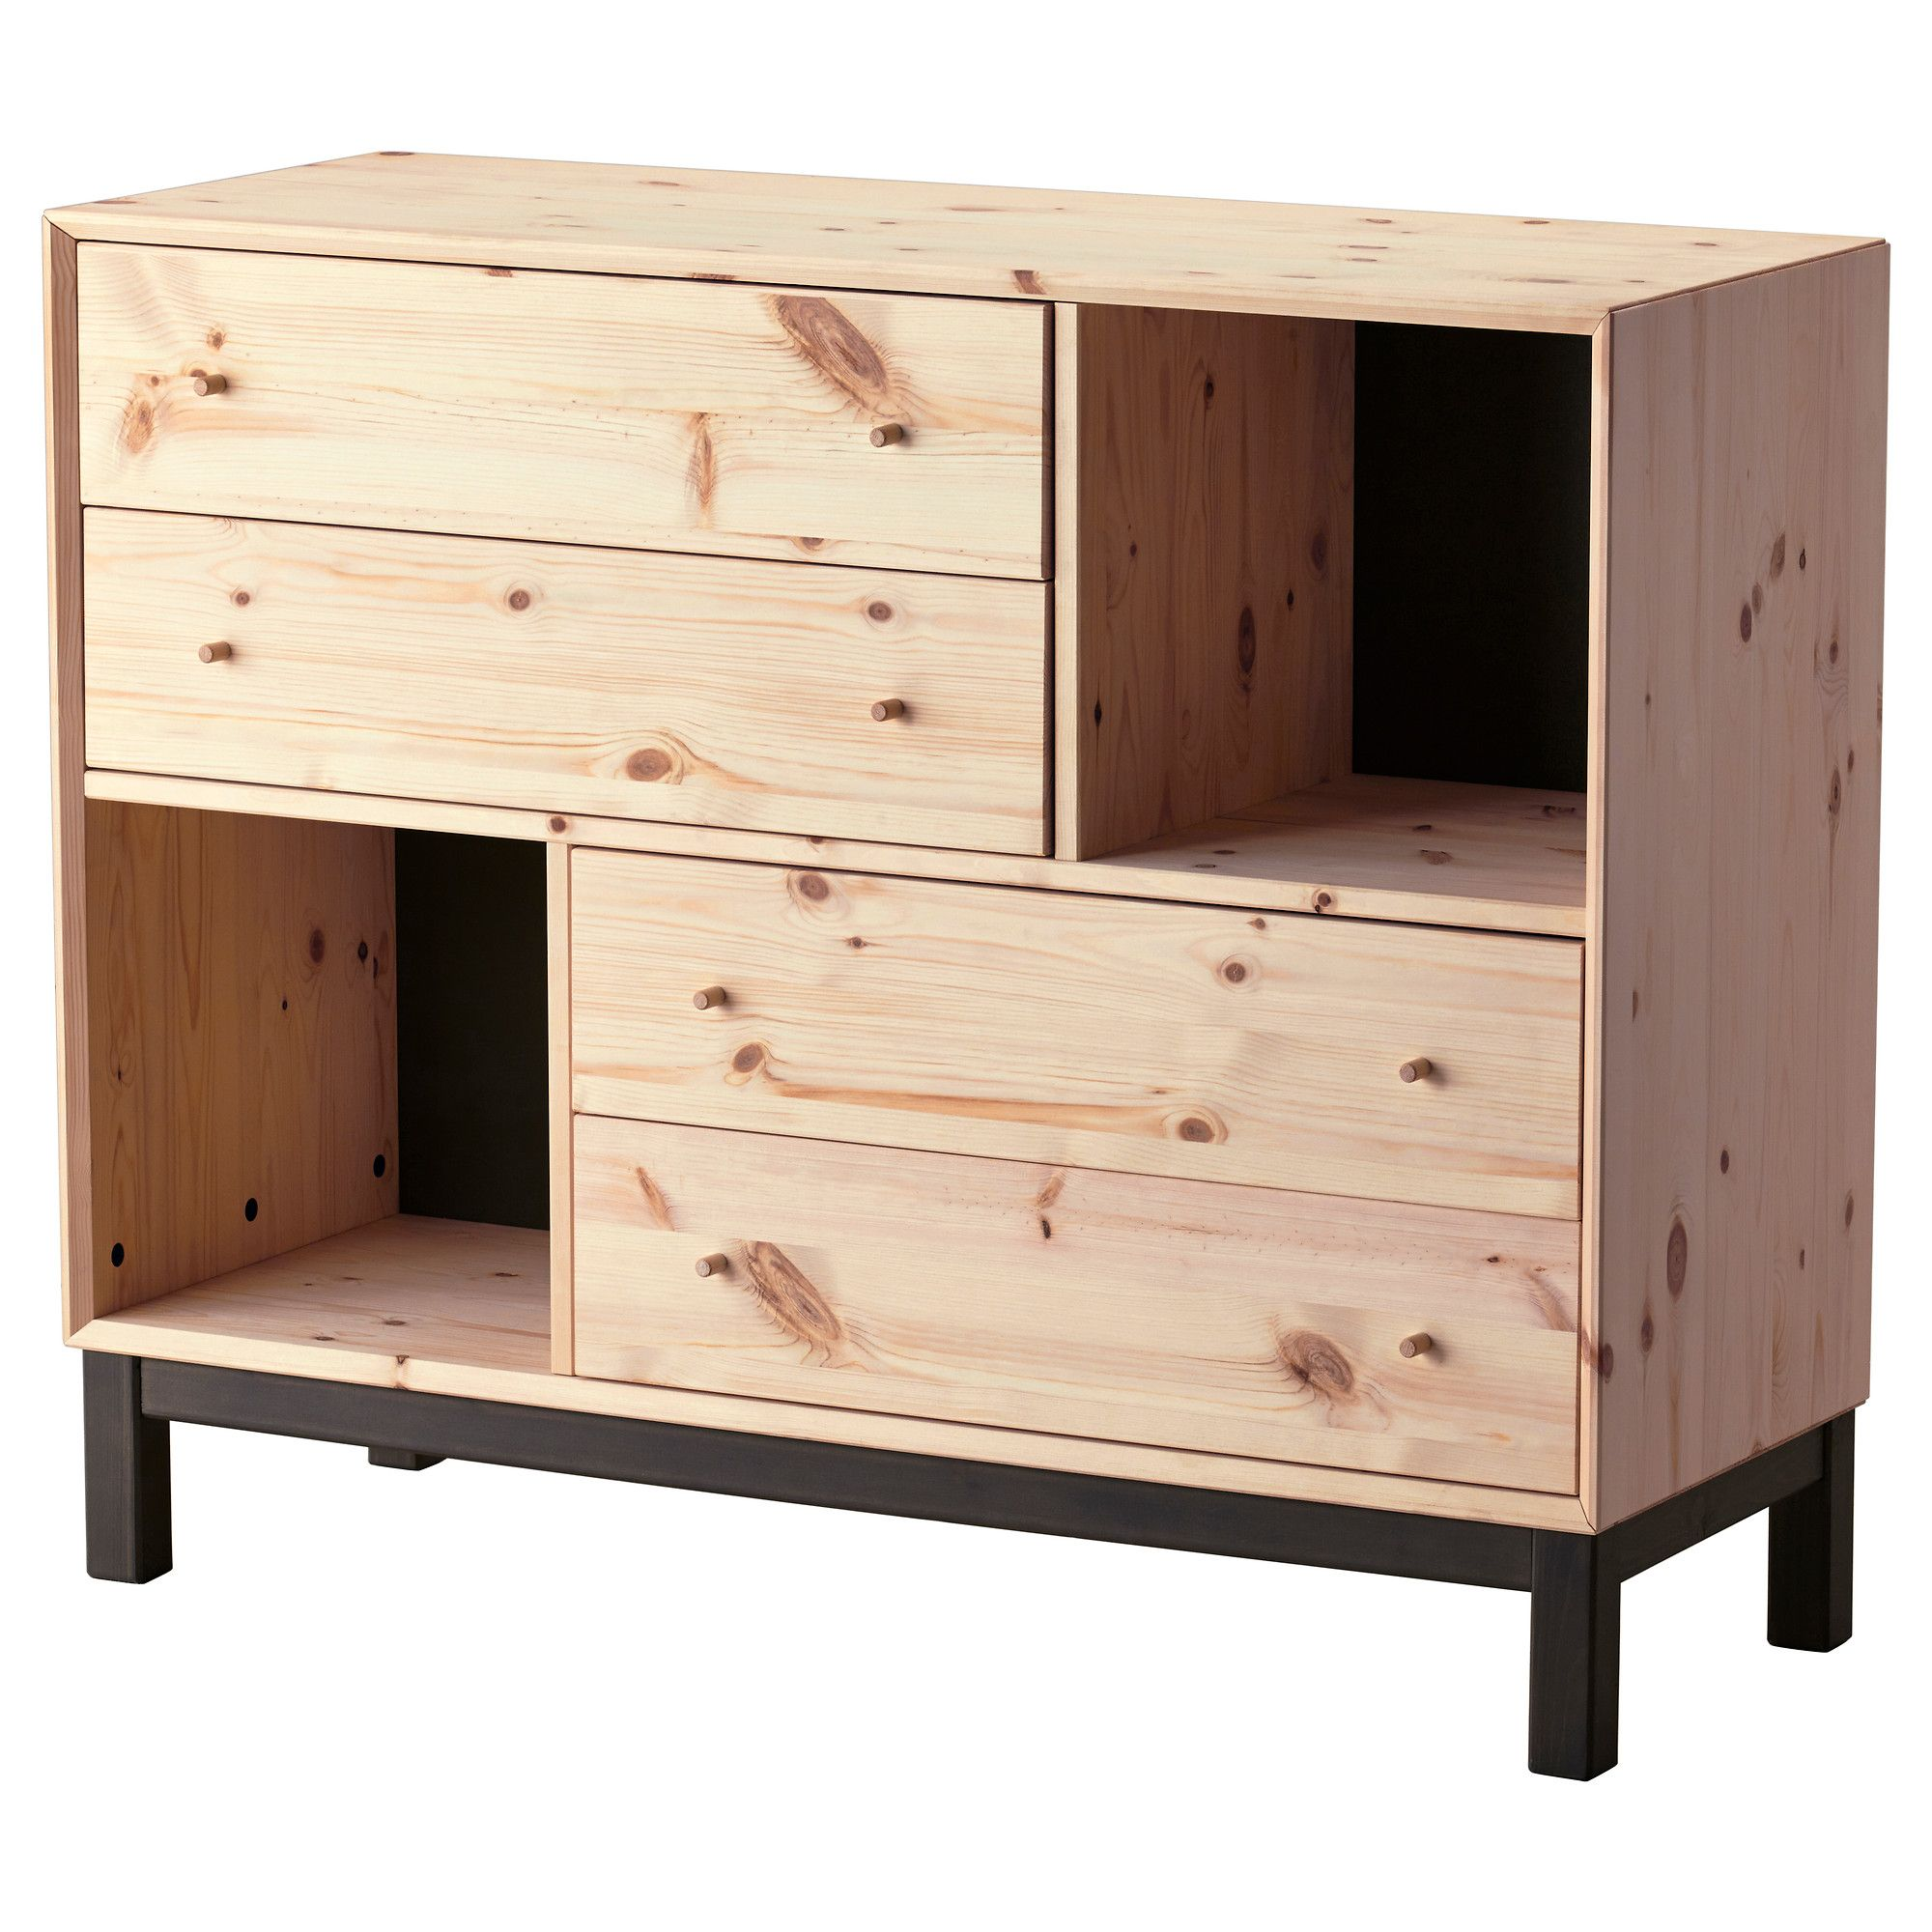 Ikea bedroom furniture chest of drawers - Norn S Chest Of 4 Drawers 2 Compartments Ikea 150 Wouldlook Amazing With